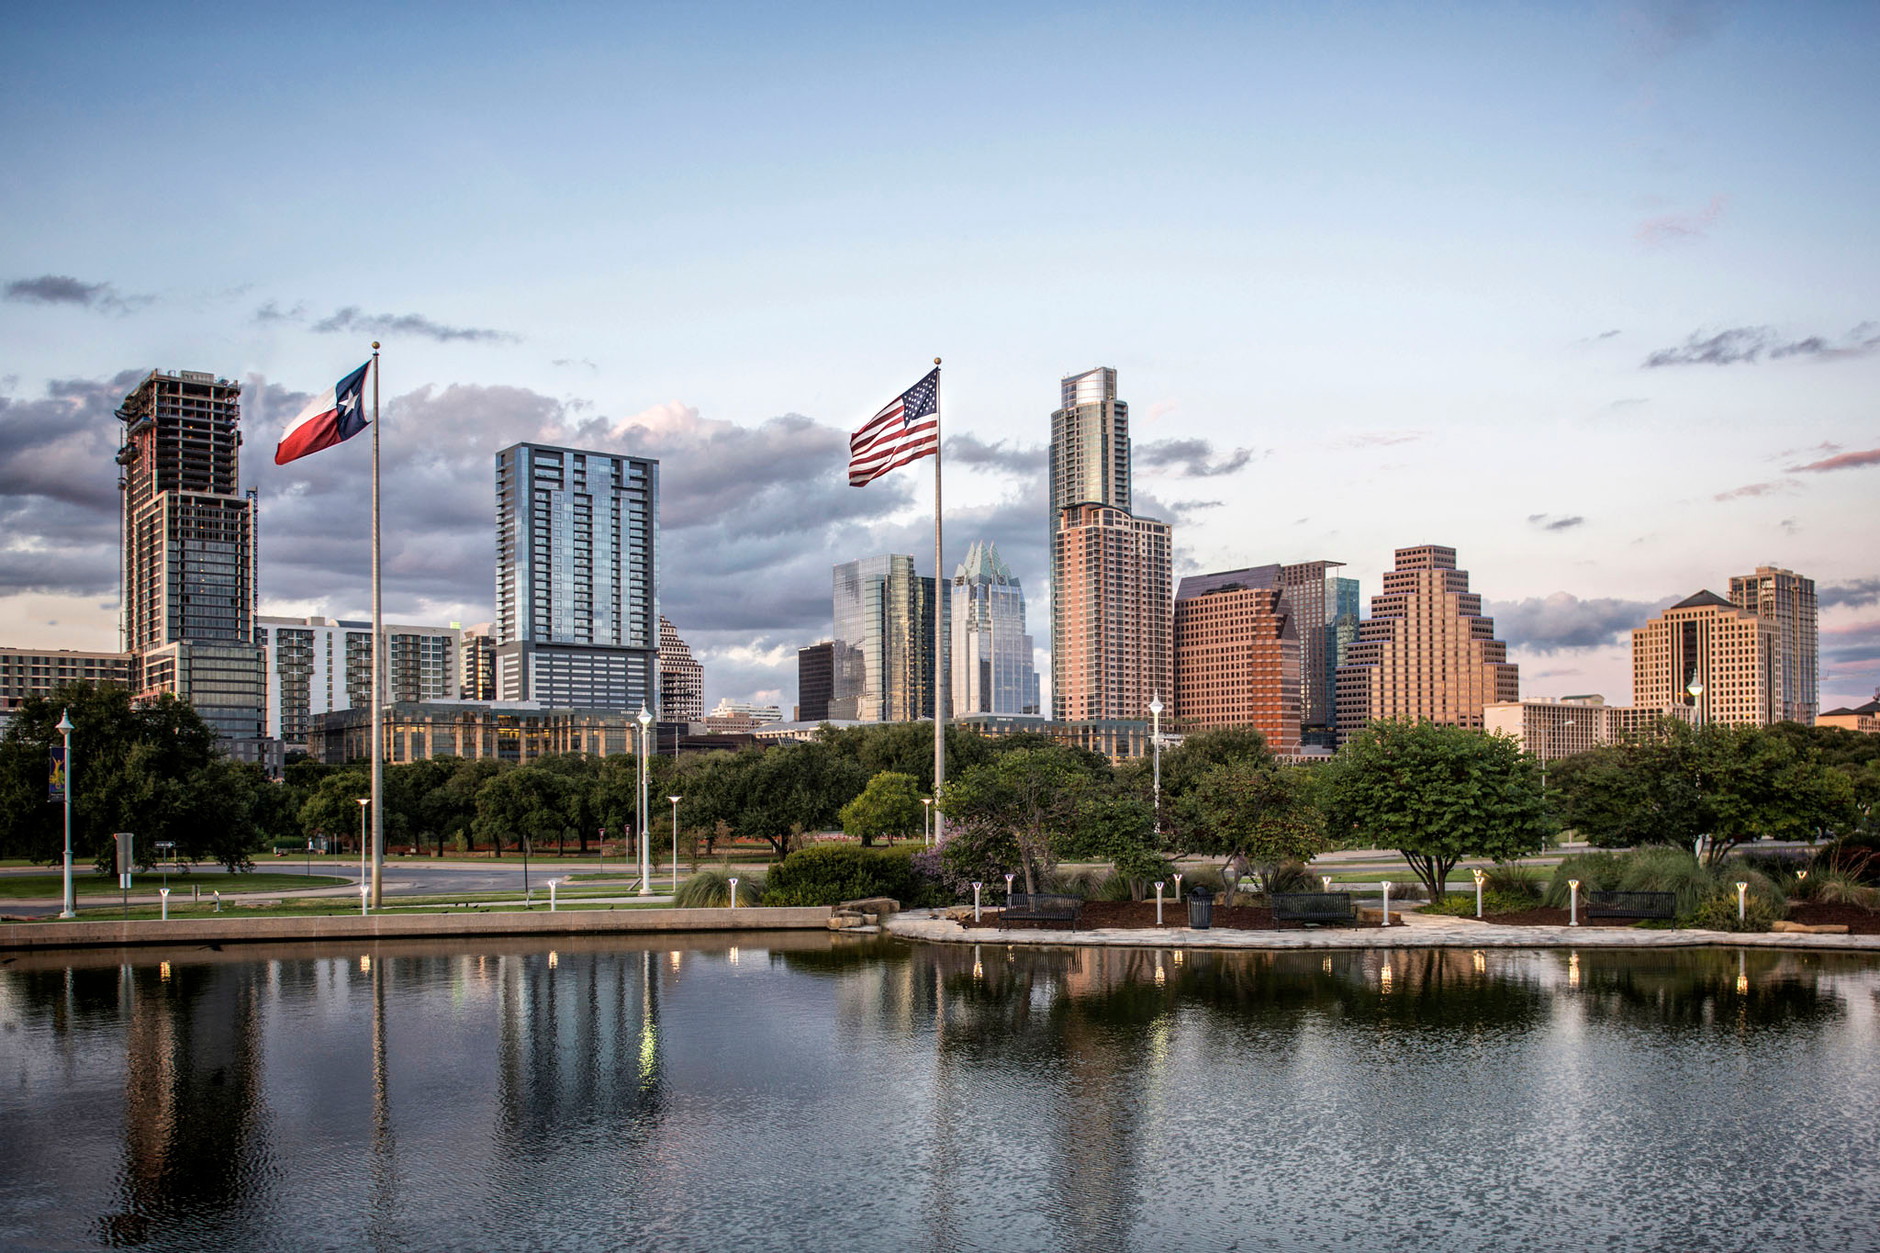 Austin Texas Skyline From Auditorium Shores, Texas and American Flag